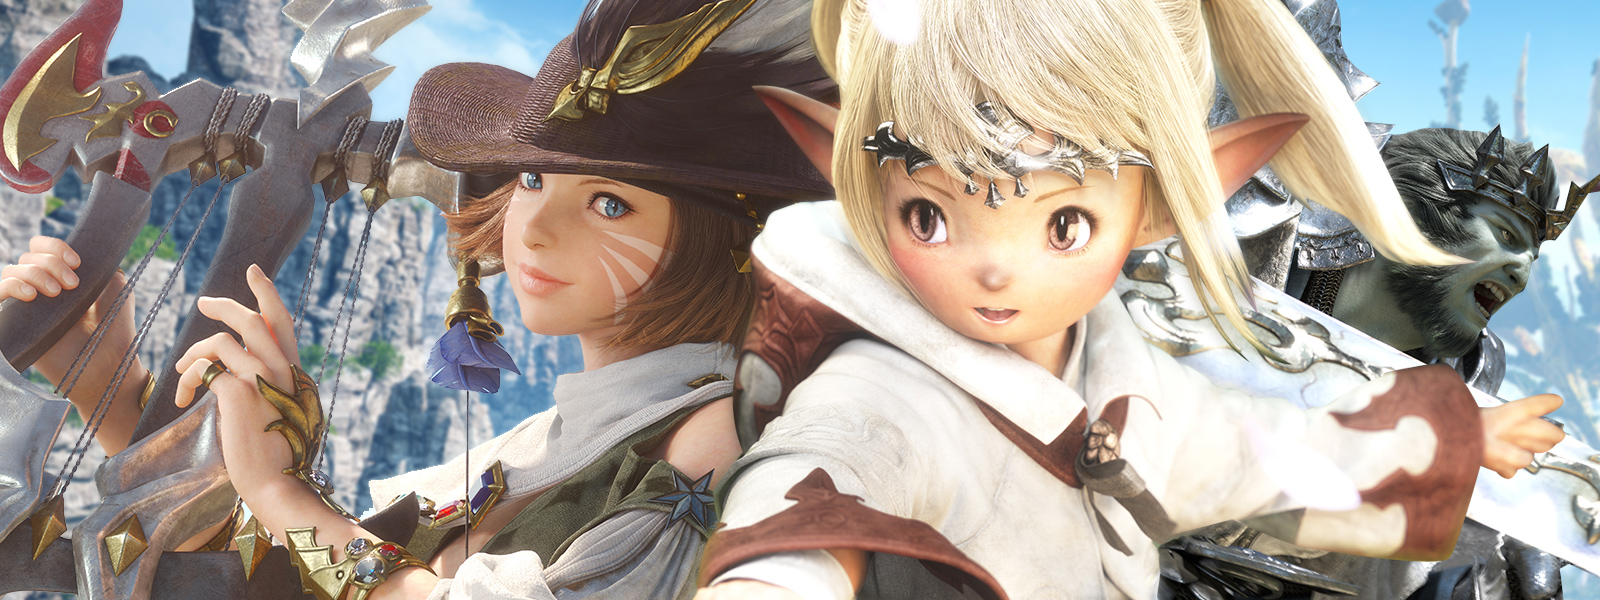 Game Review: Final Fantasy - A Realm Reborn Ffxivarr_082713_1600